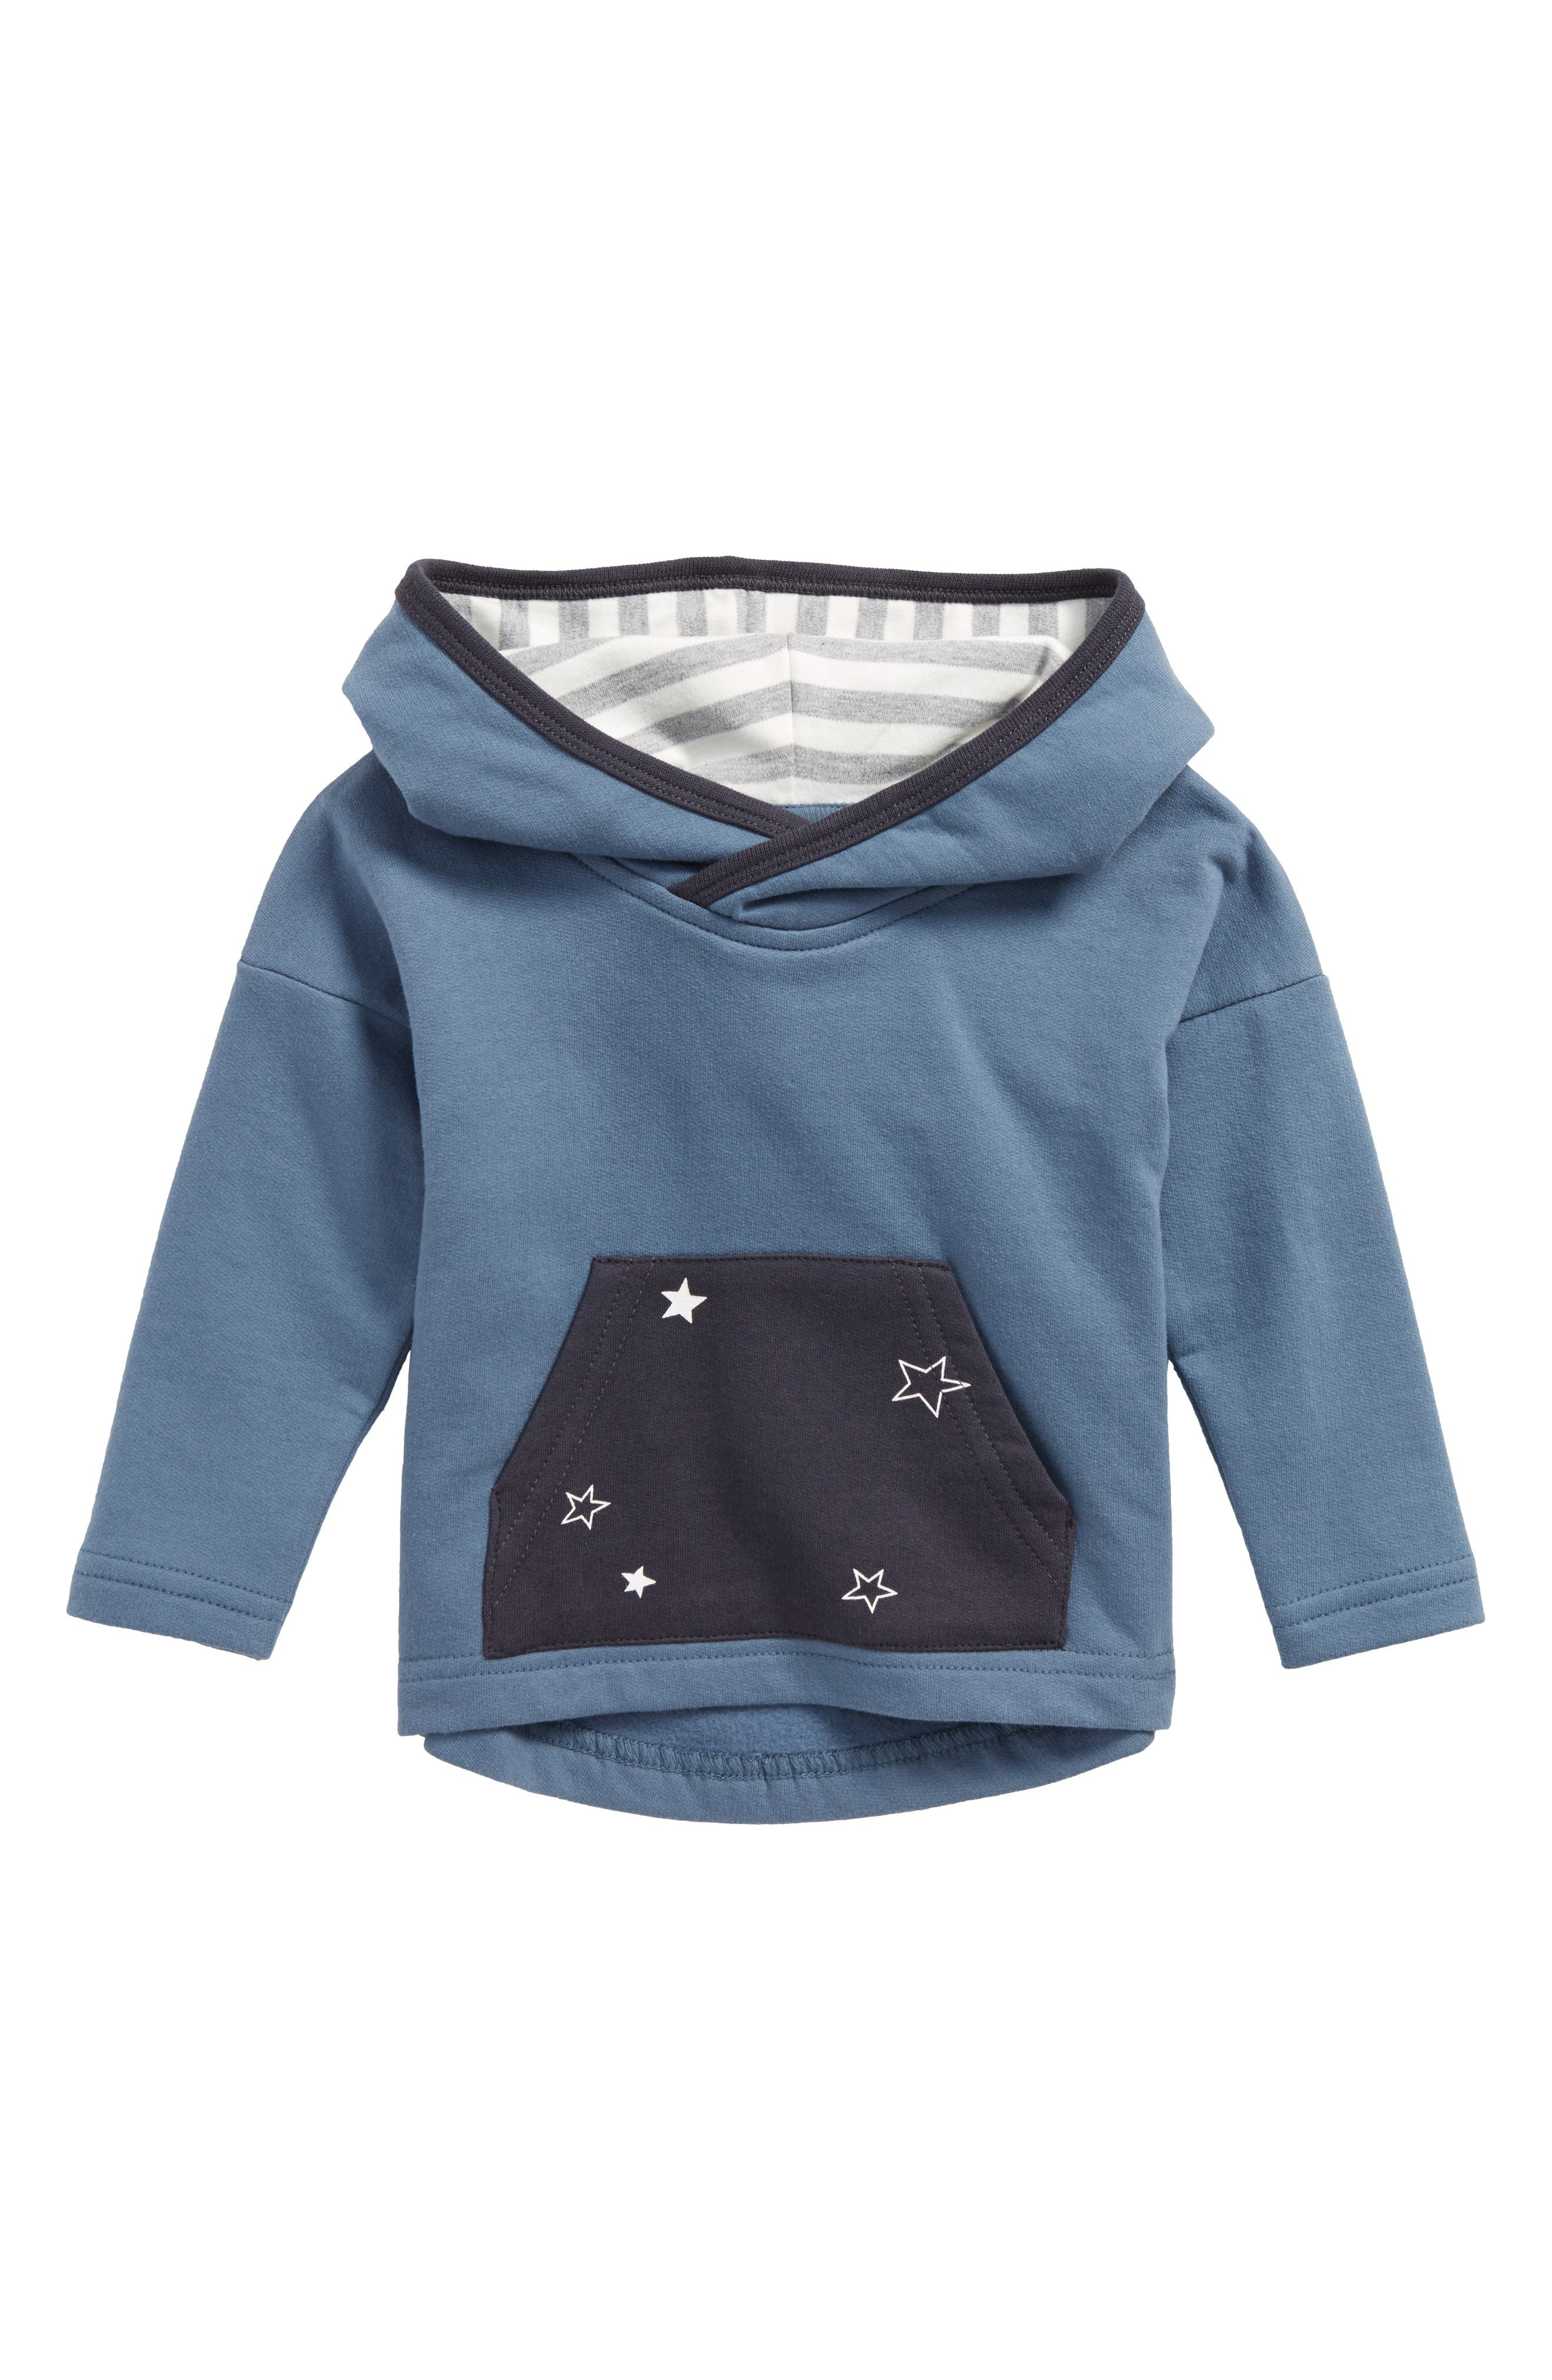 Main Image - City Mouse Star Pocket Hoodie (Baby Boys)